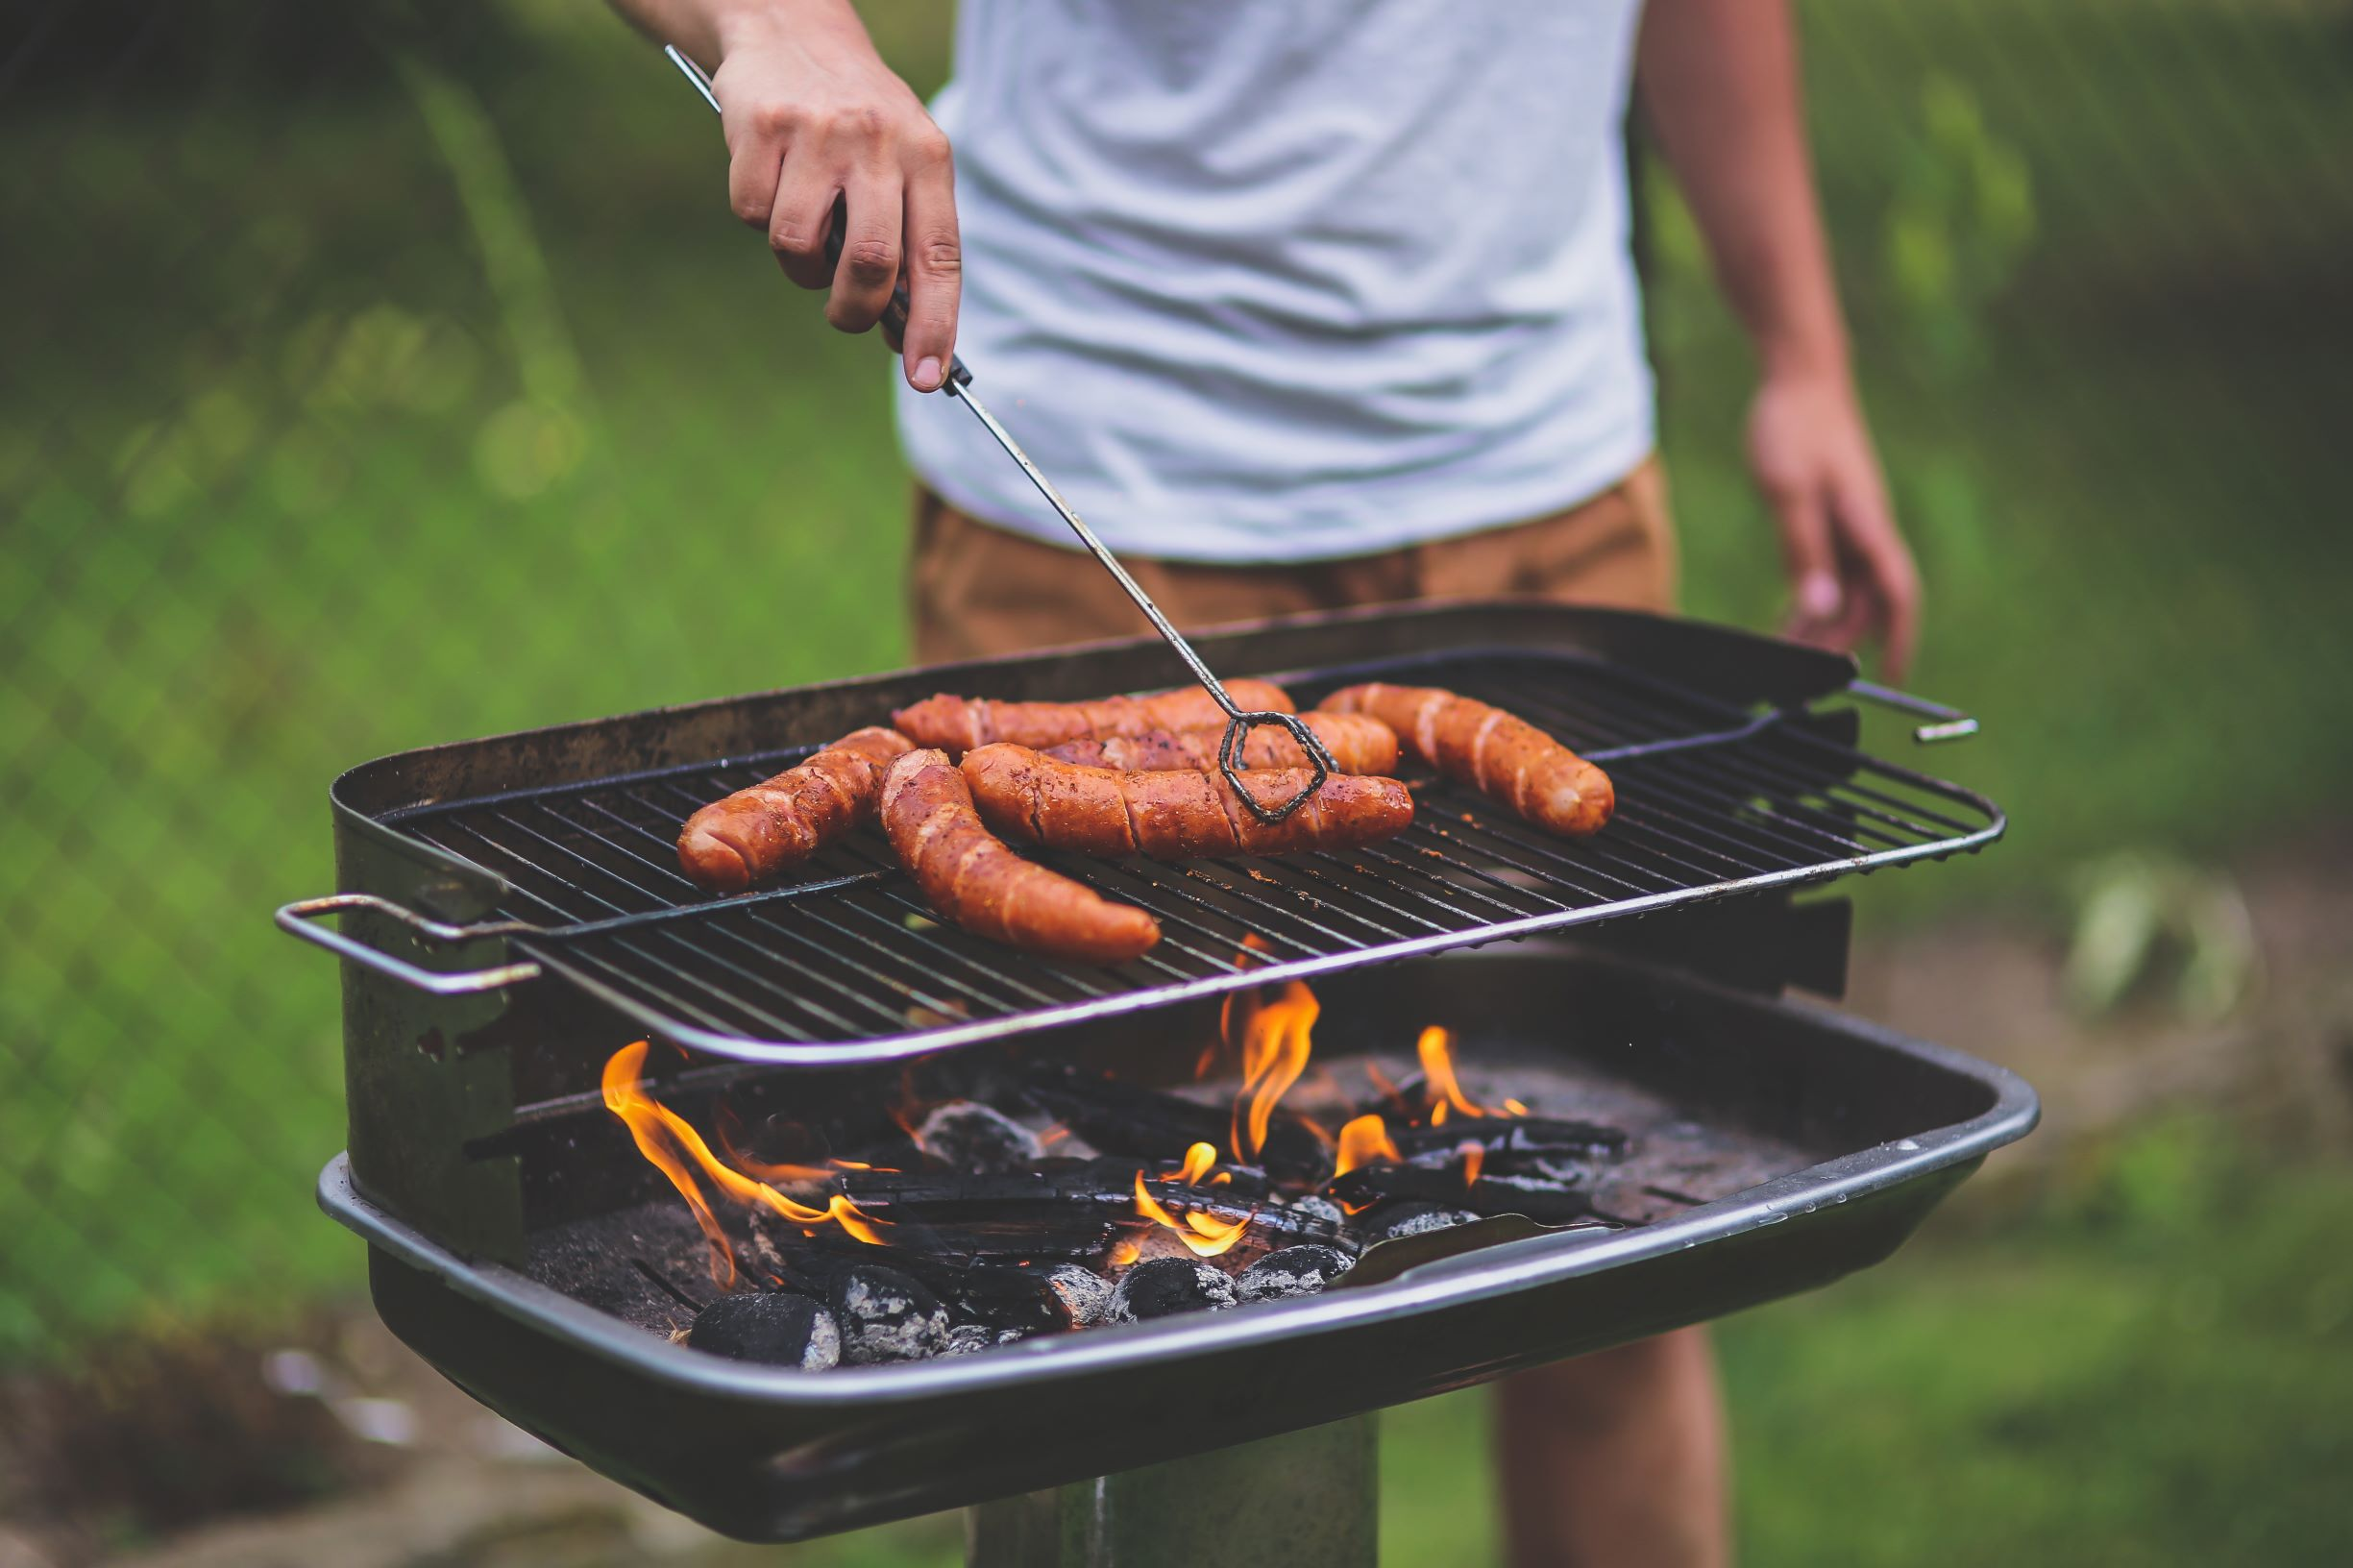 man grilling hot dogs over charcoal grill